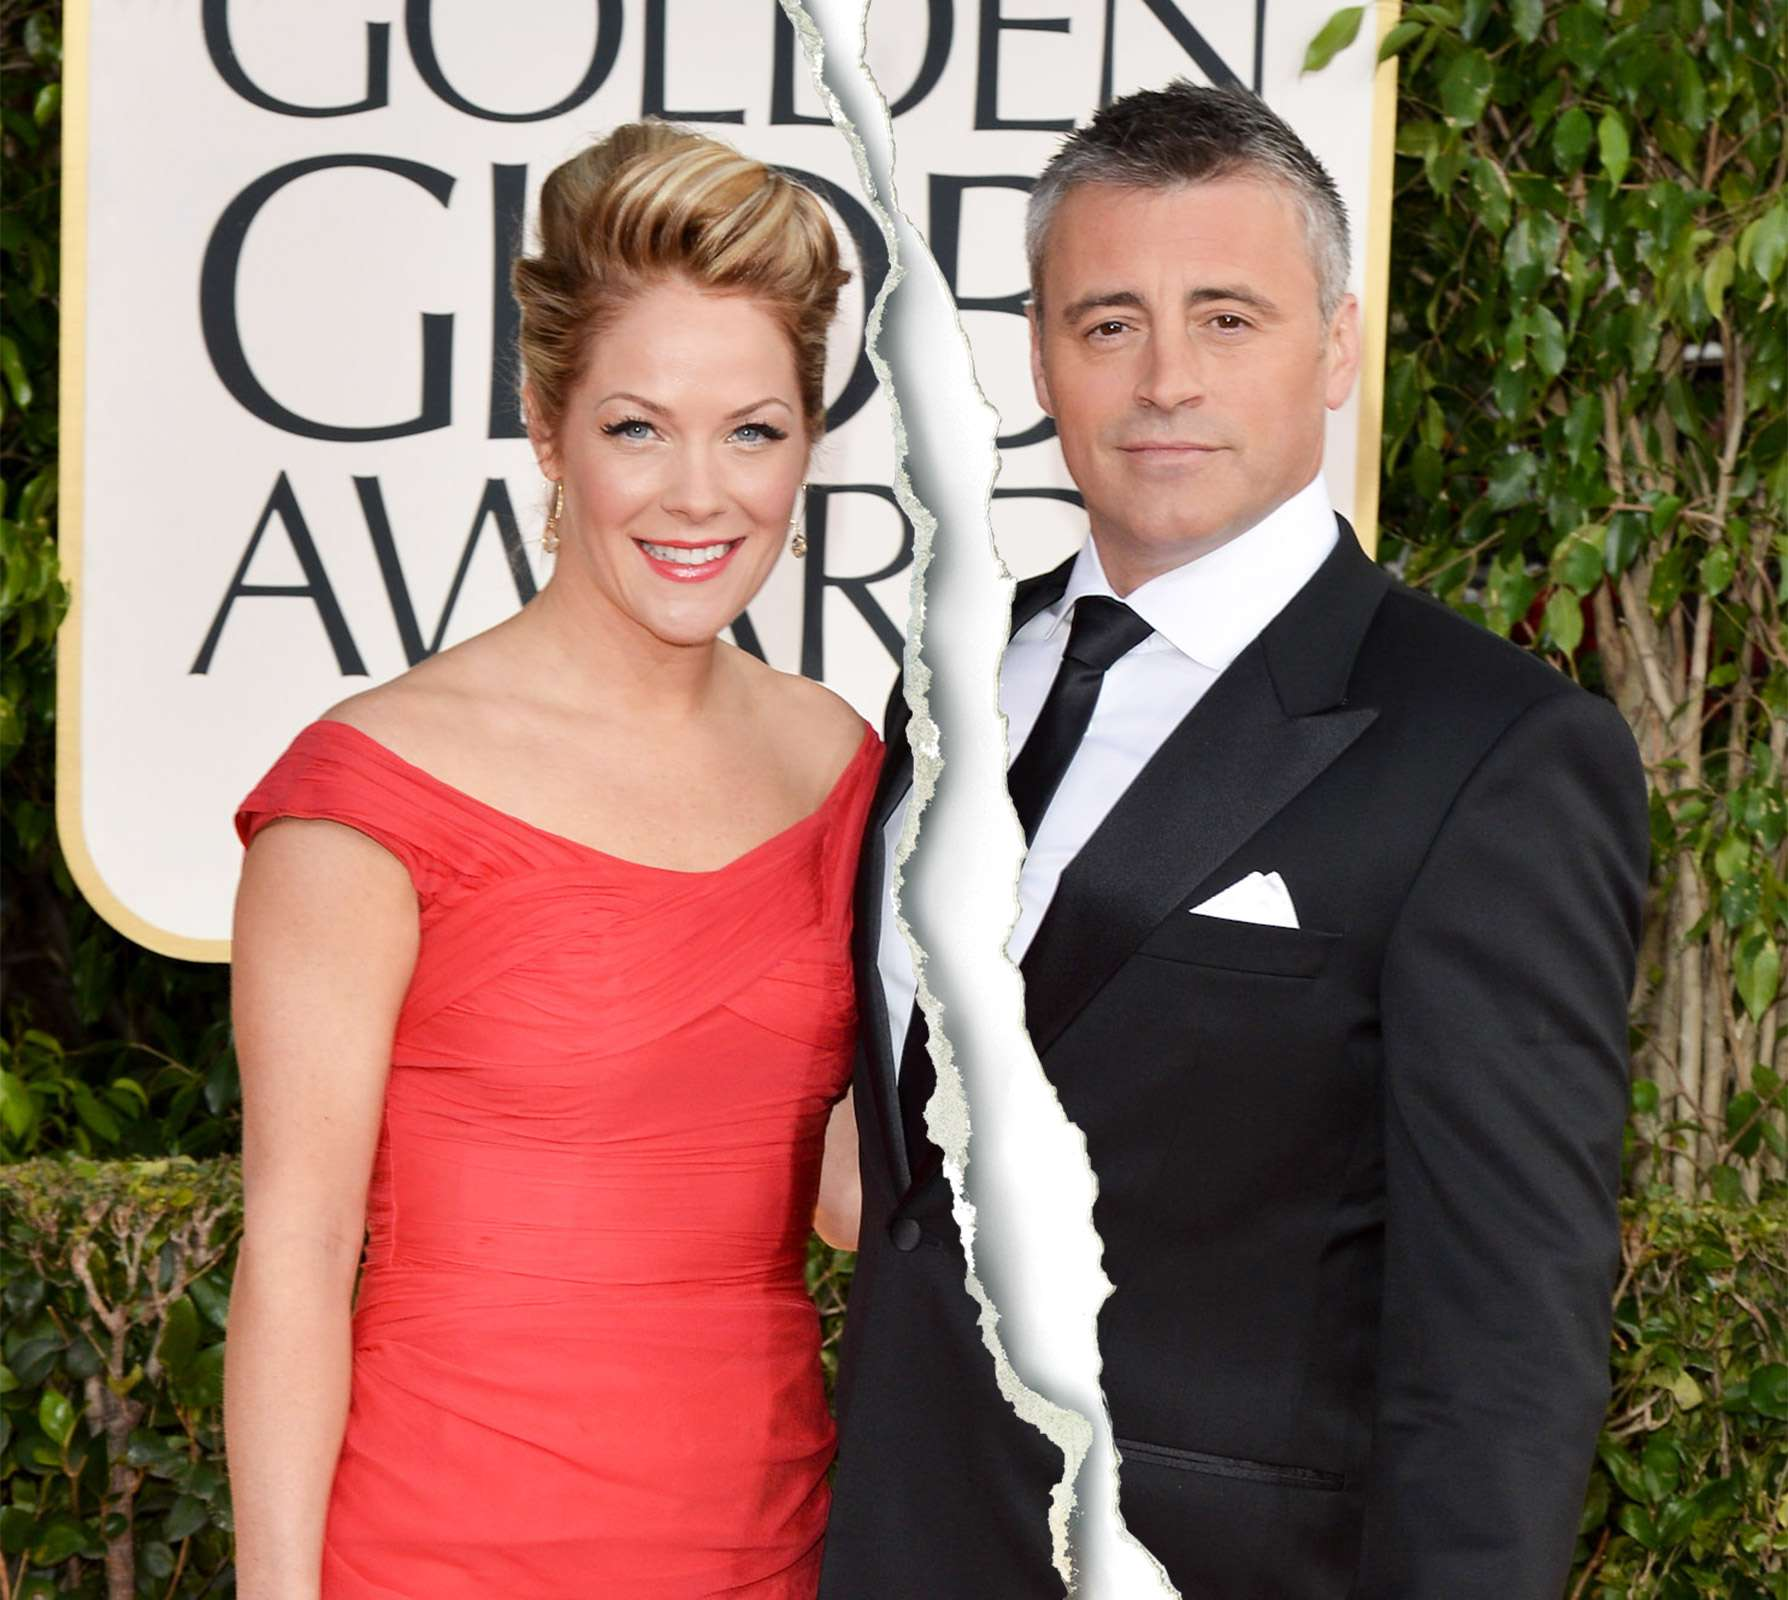 andrea anders and matt leblanc Split